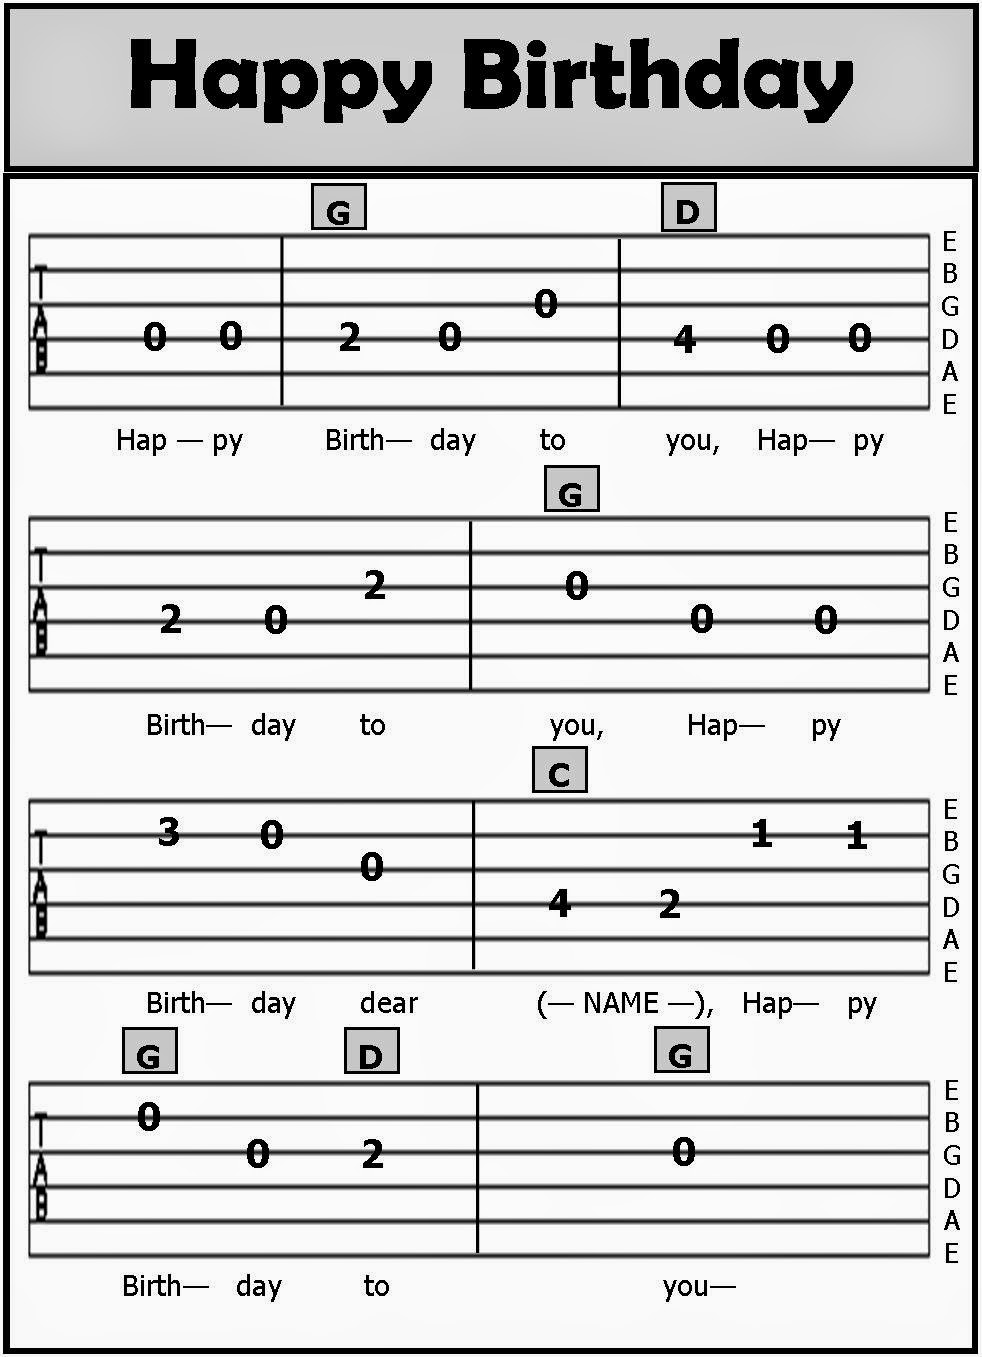 Easy Happy Birthday Chords And Melody Free Guitar Lesson From